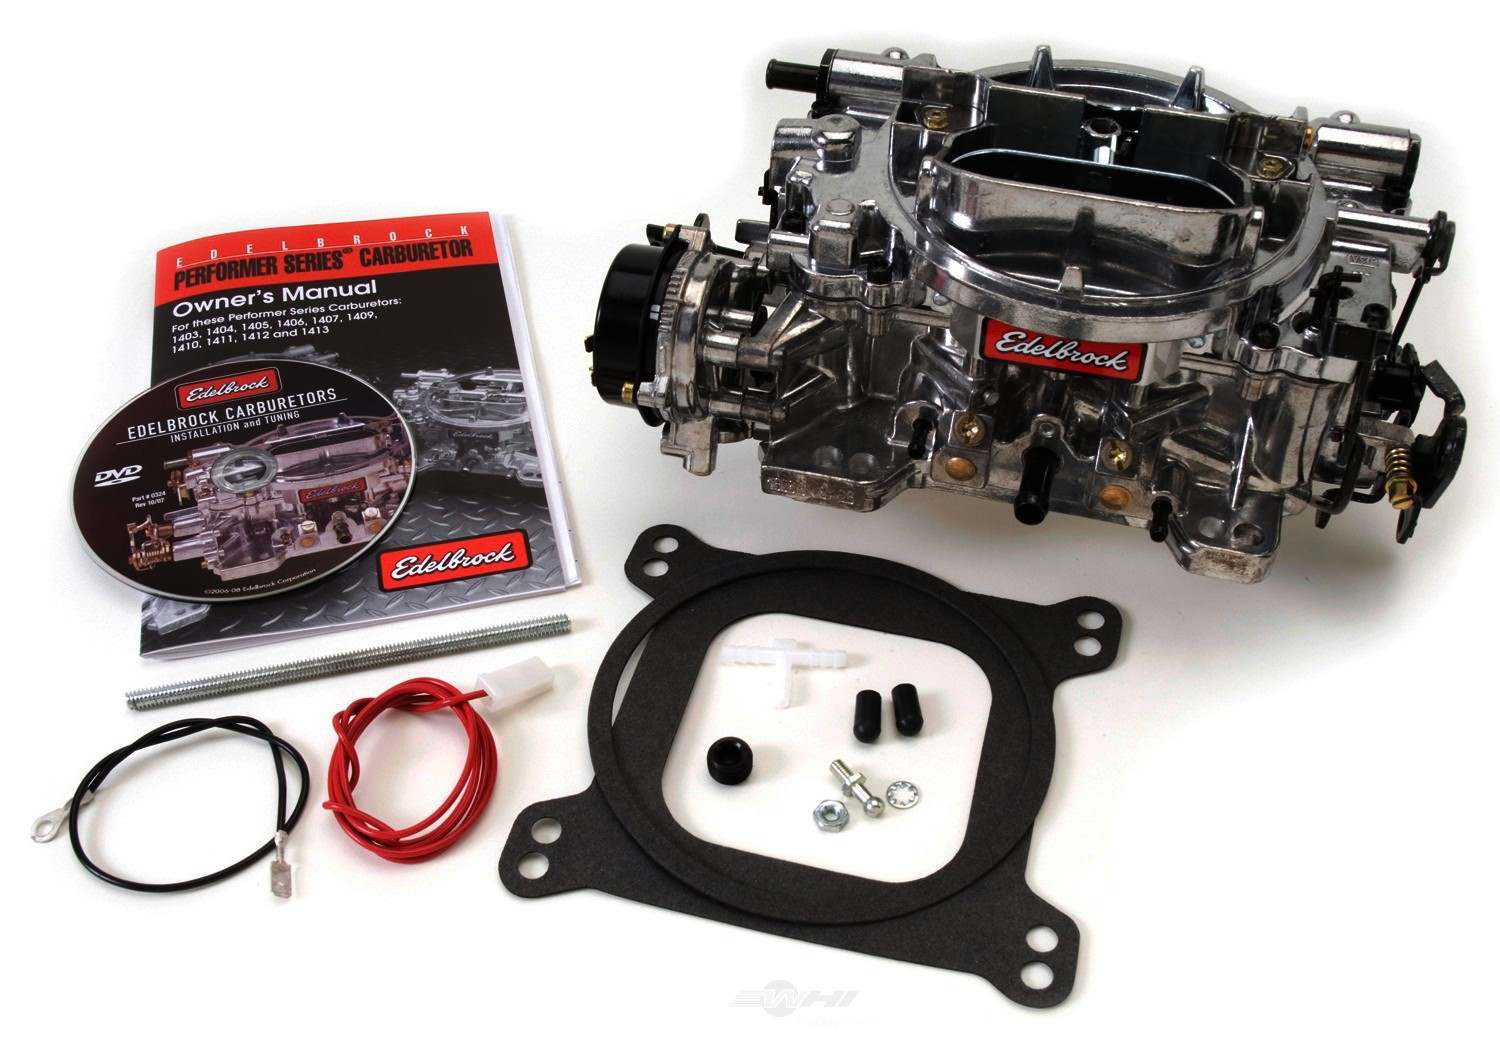 EDELBROCK - Thunder Series AVS Off-Road Carburetor - EDB 1826